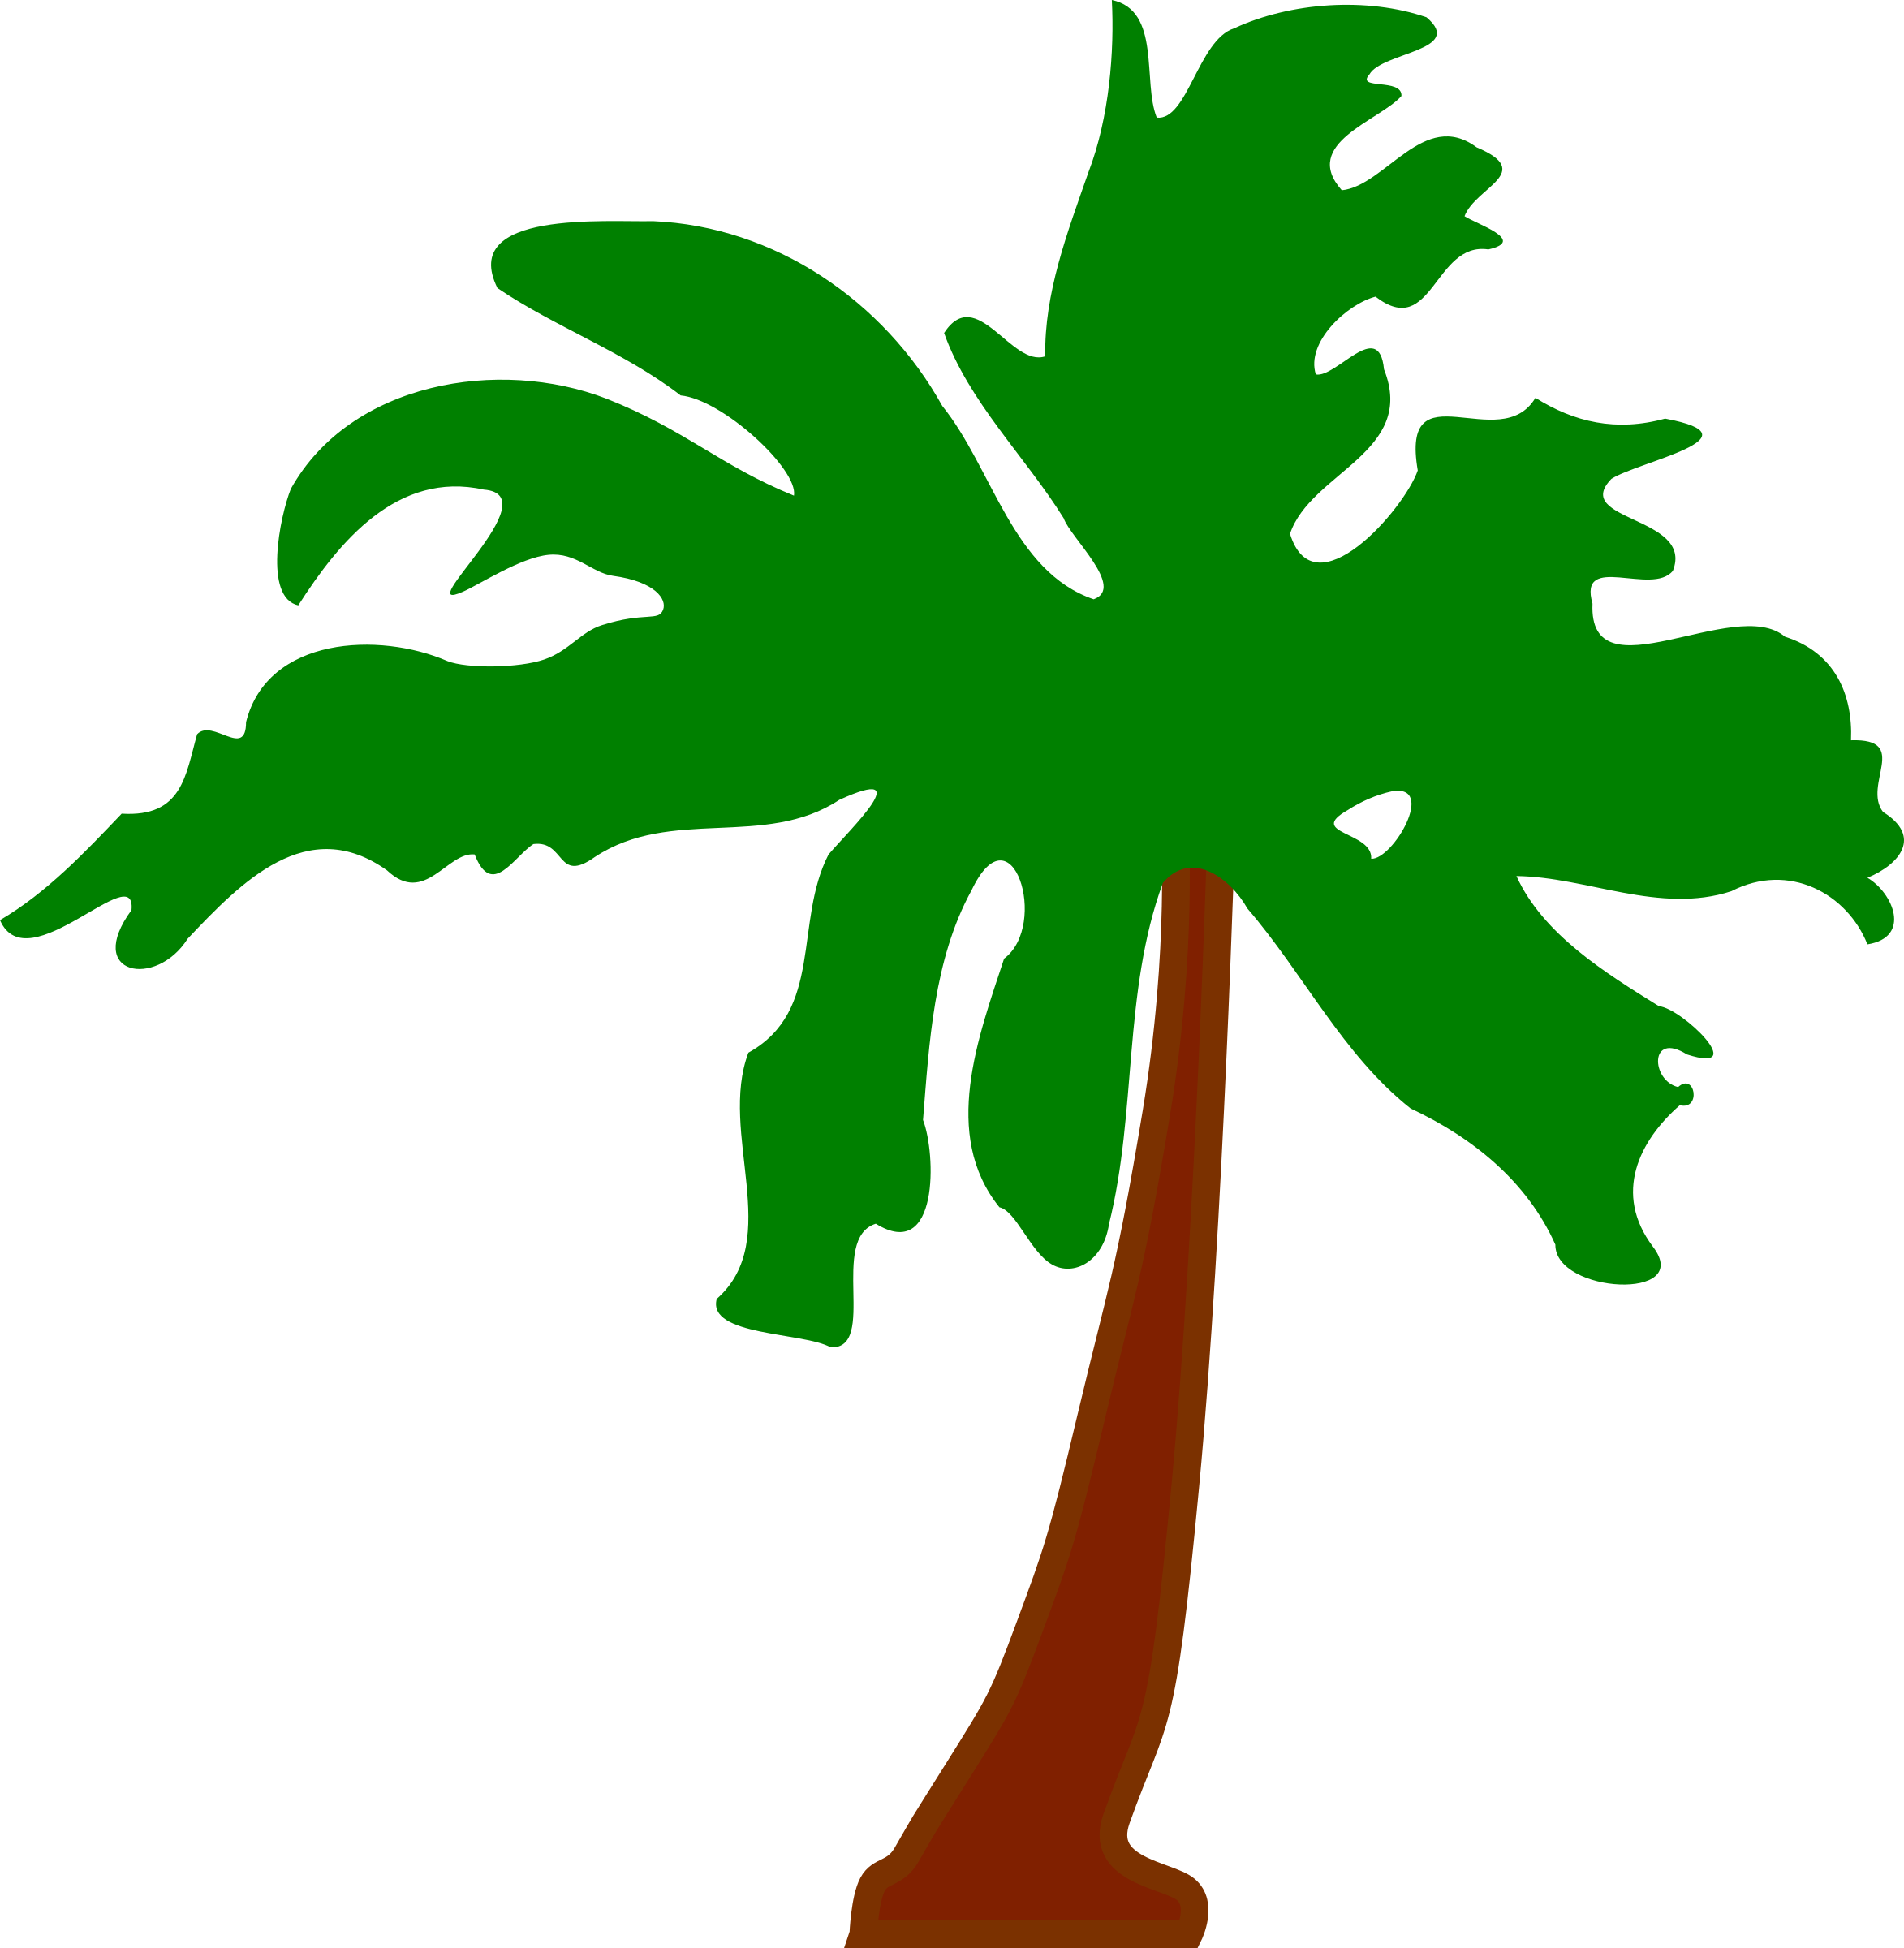 Palm tree island clipart image black and white stock Clipart - Palm tree 5 image black and white stock